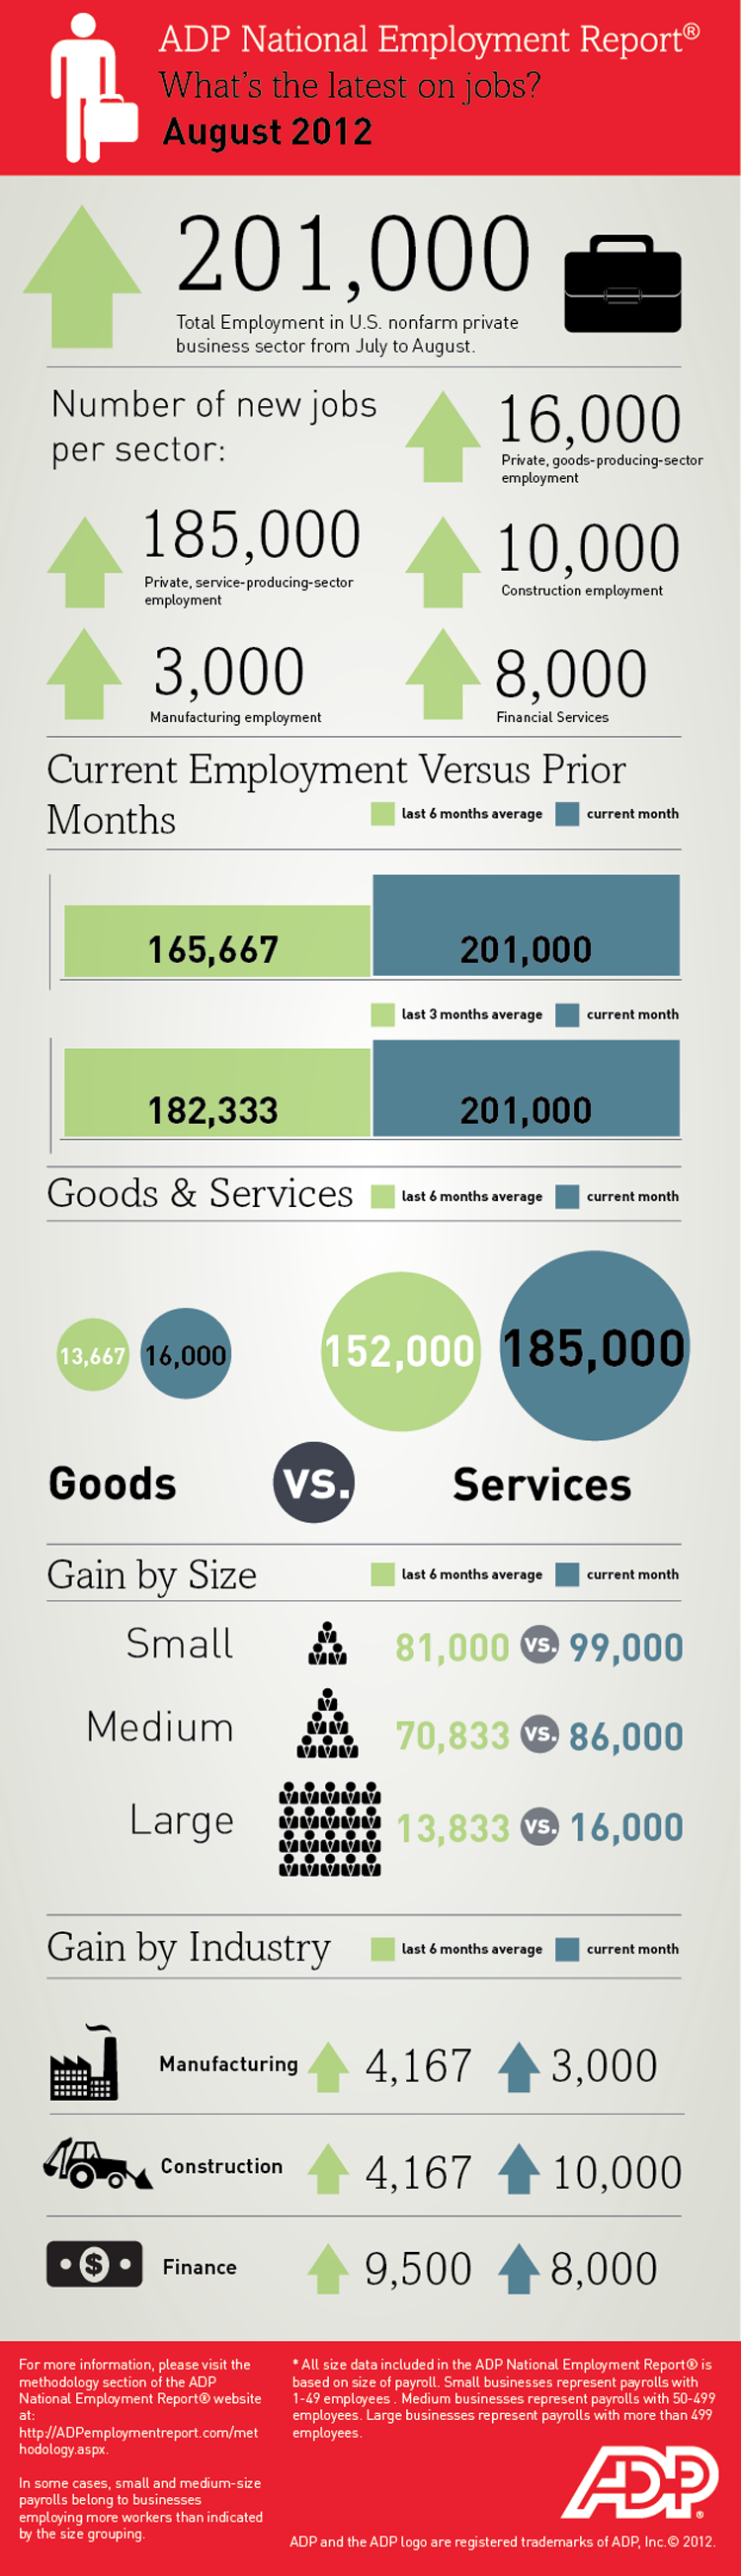 National Employment Report August 2012